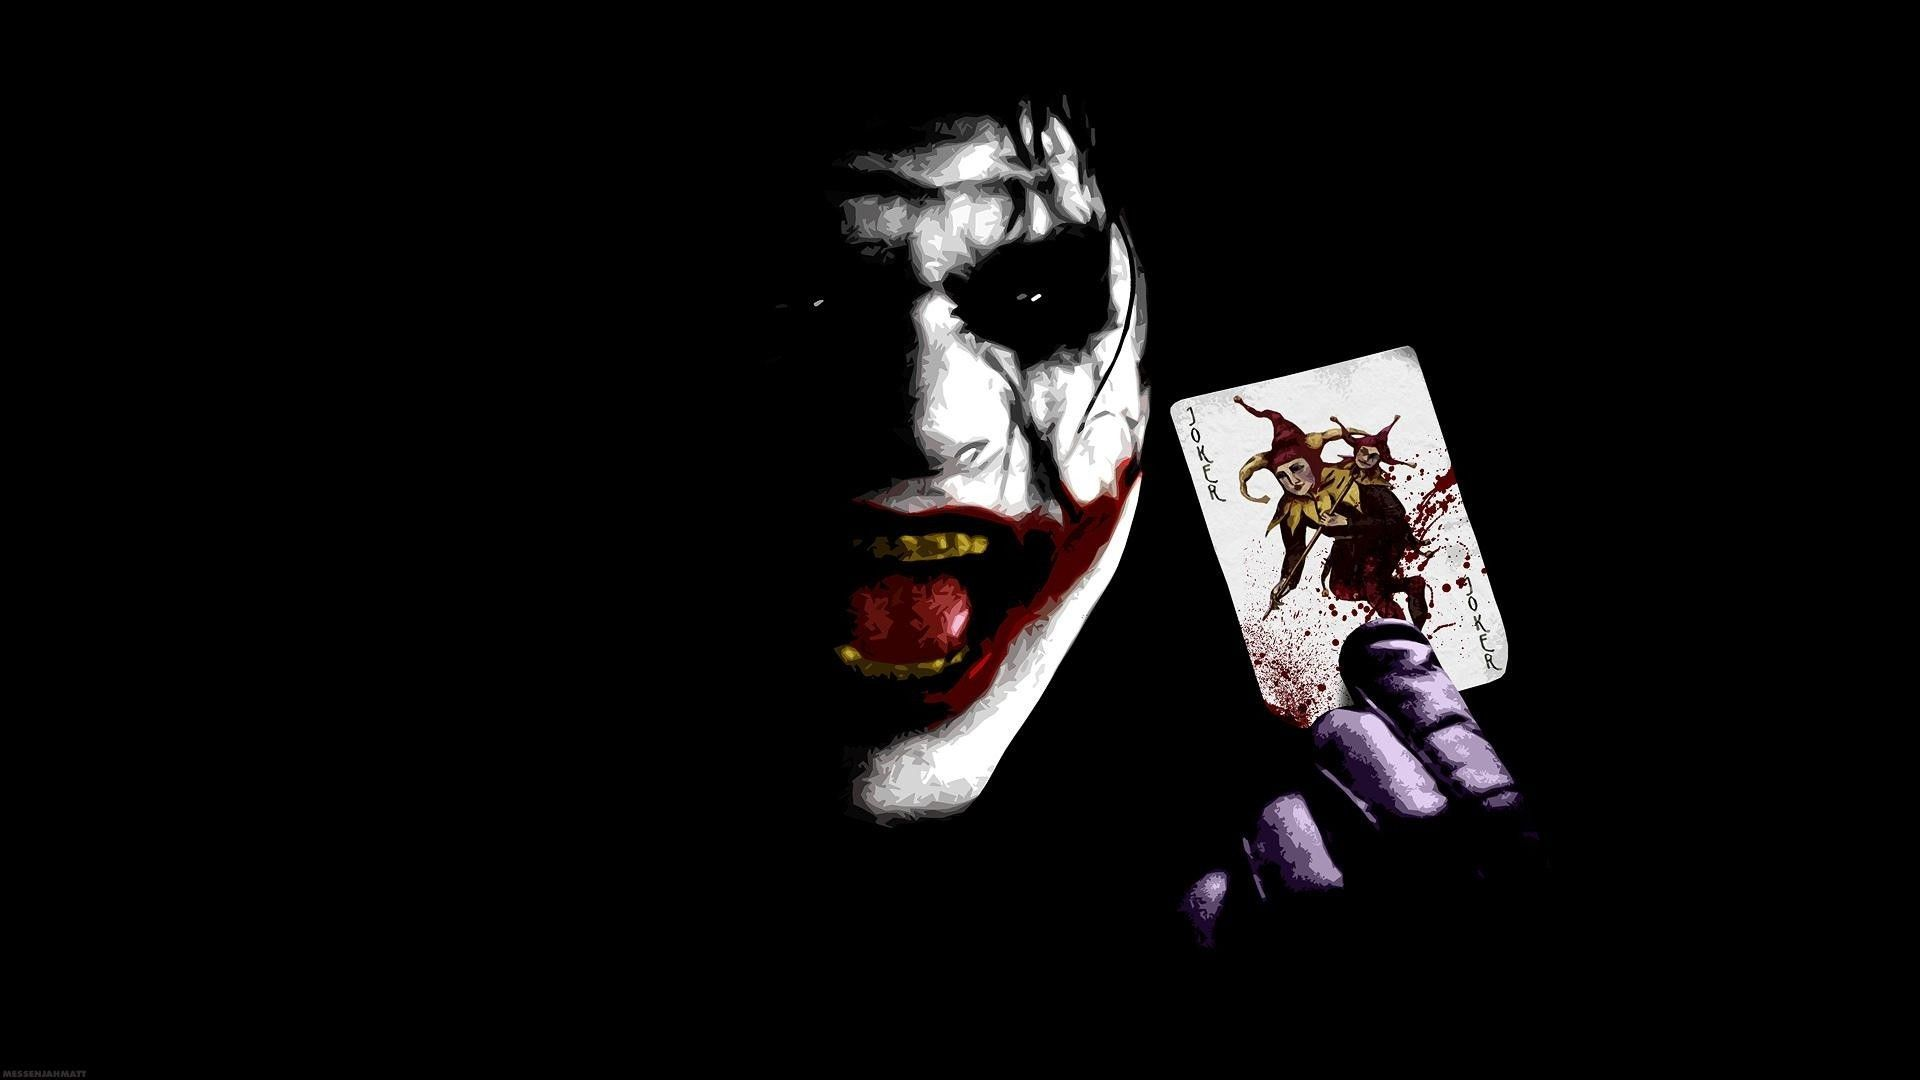 Here We Provide The Top Android Themes Which Are Totally Customize Your Android Phone Every Themes Joker Hd Wallpaper Joker Wallpapers Batman Joker Wallpaper Dark theme 1080p joker hd mobile